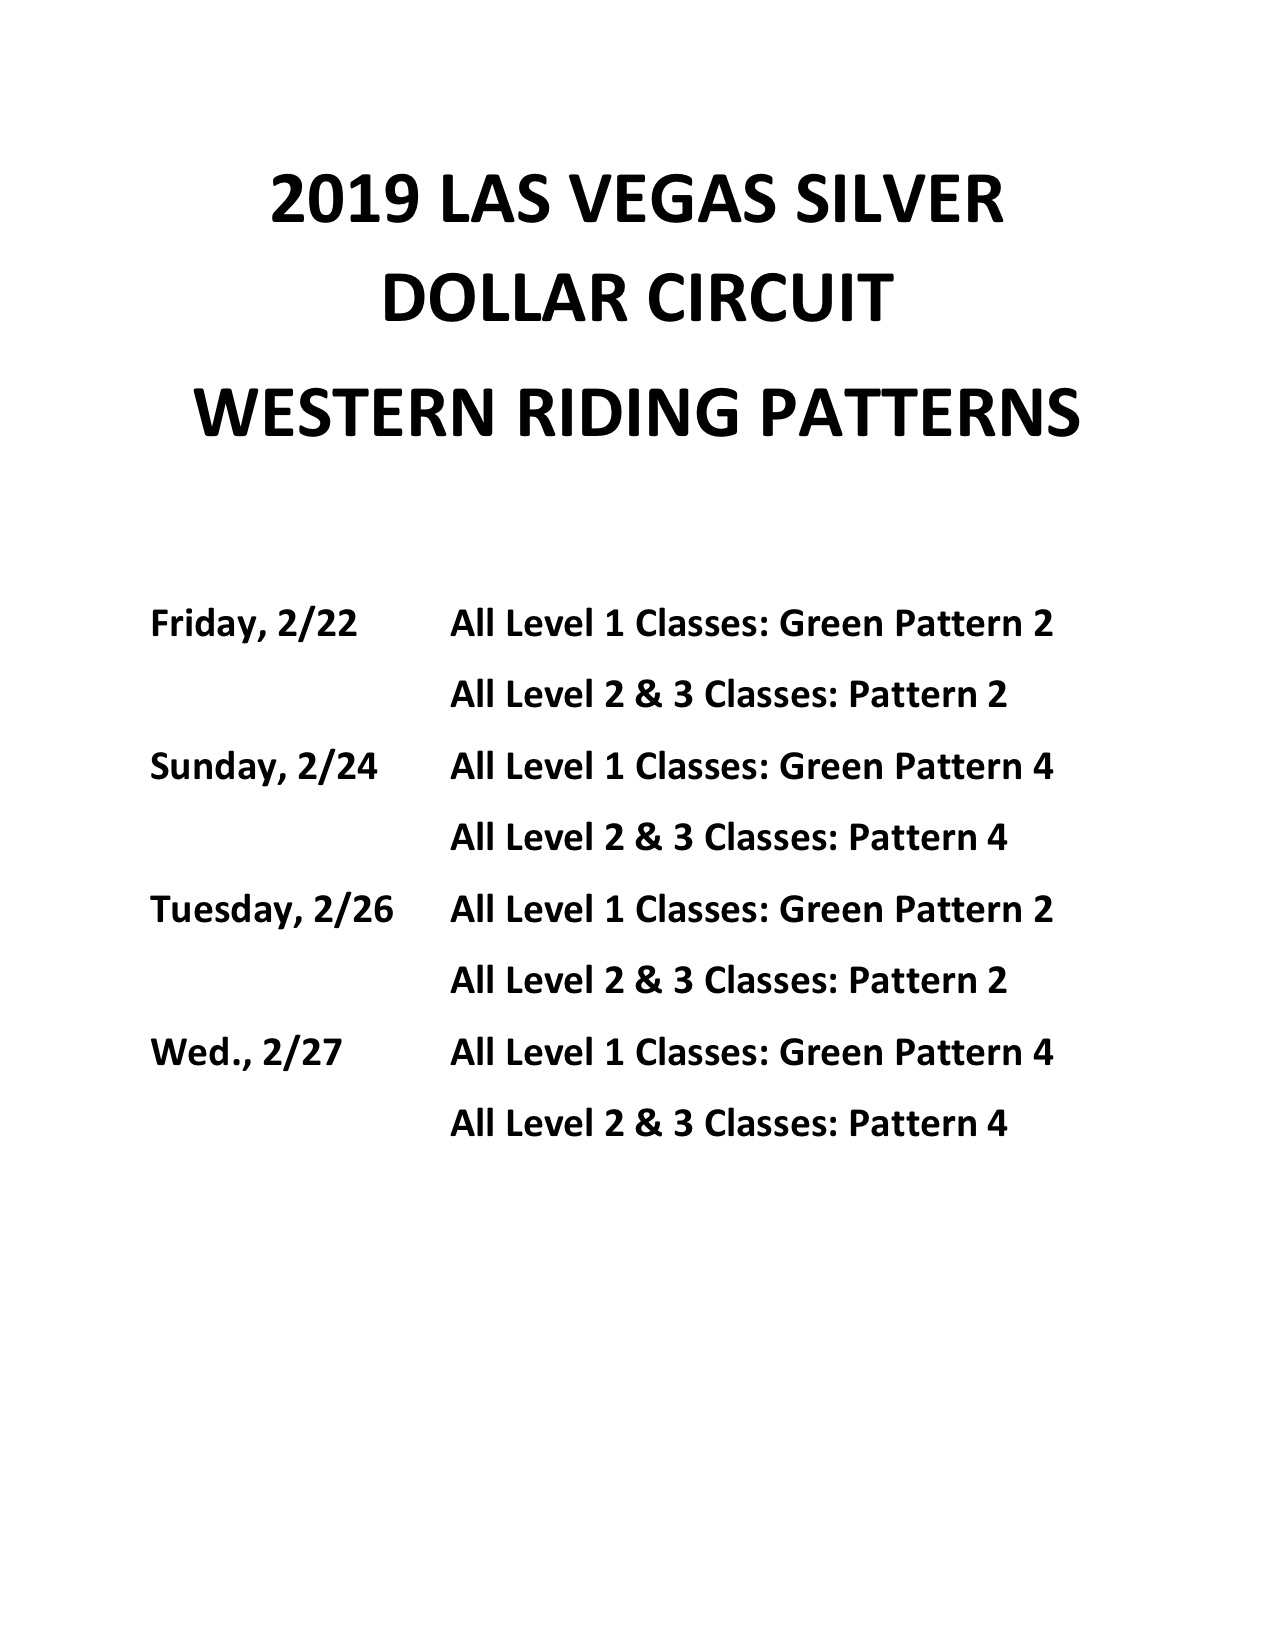 List of Western Riding Patterns.jpg